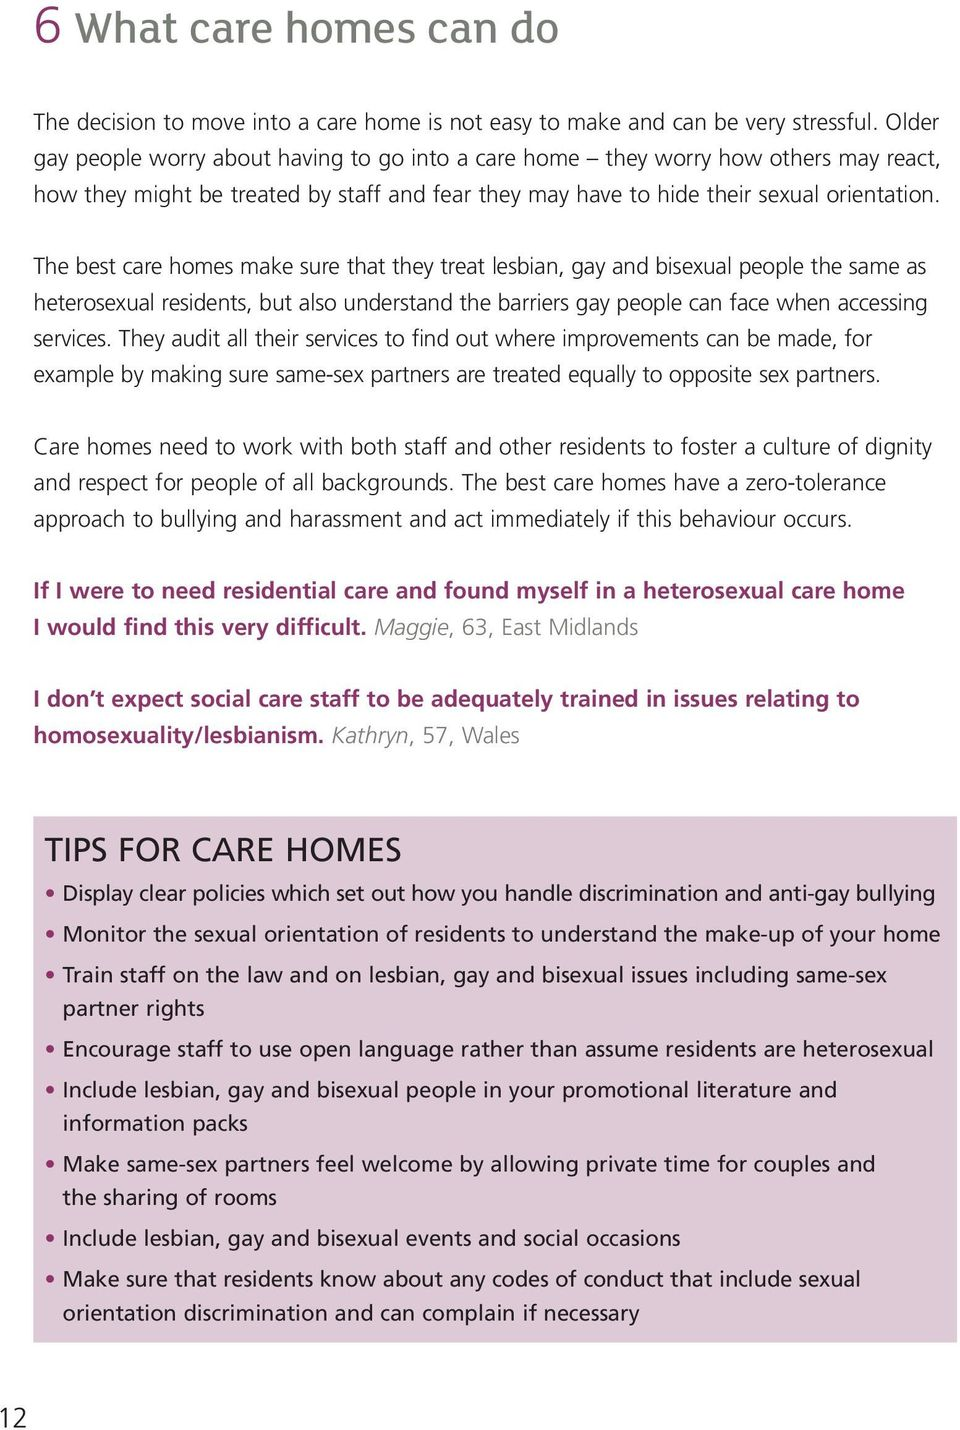 The best care homes make sure that they treat lesbian, gay and bisexual people the same as heterosexual residents, but also understand the barriers gay people can face when accessing services.